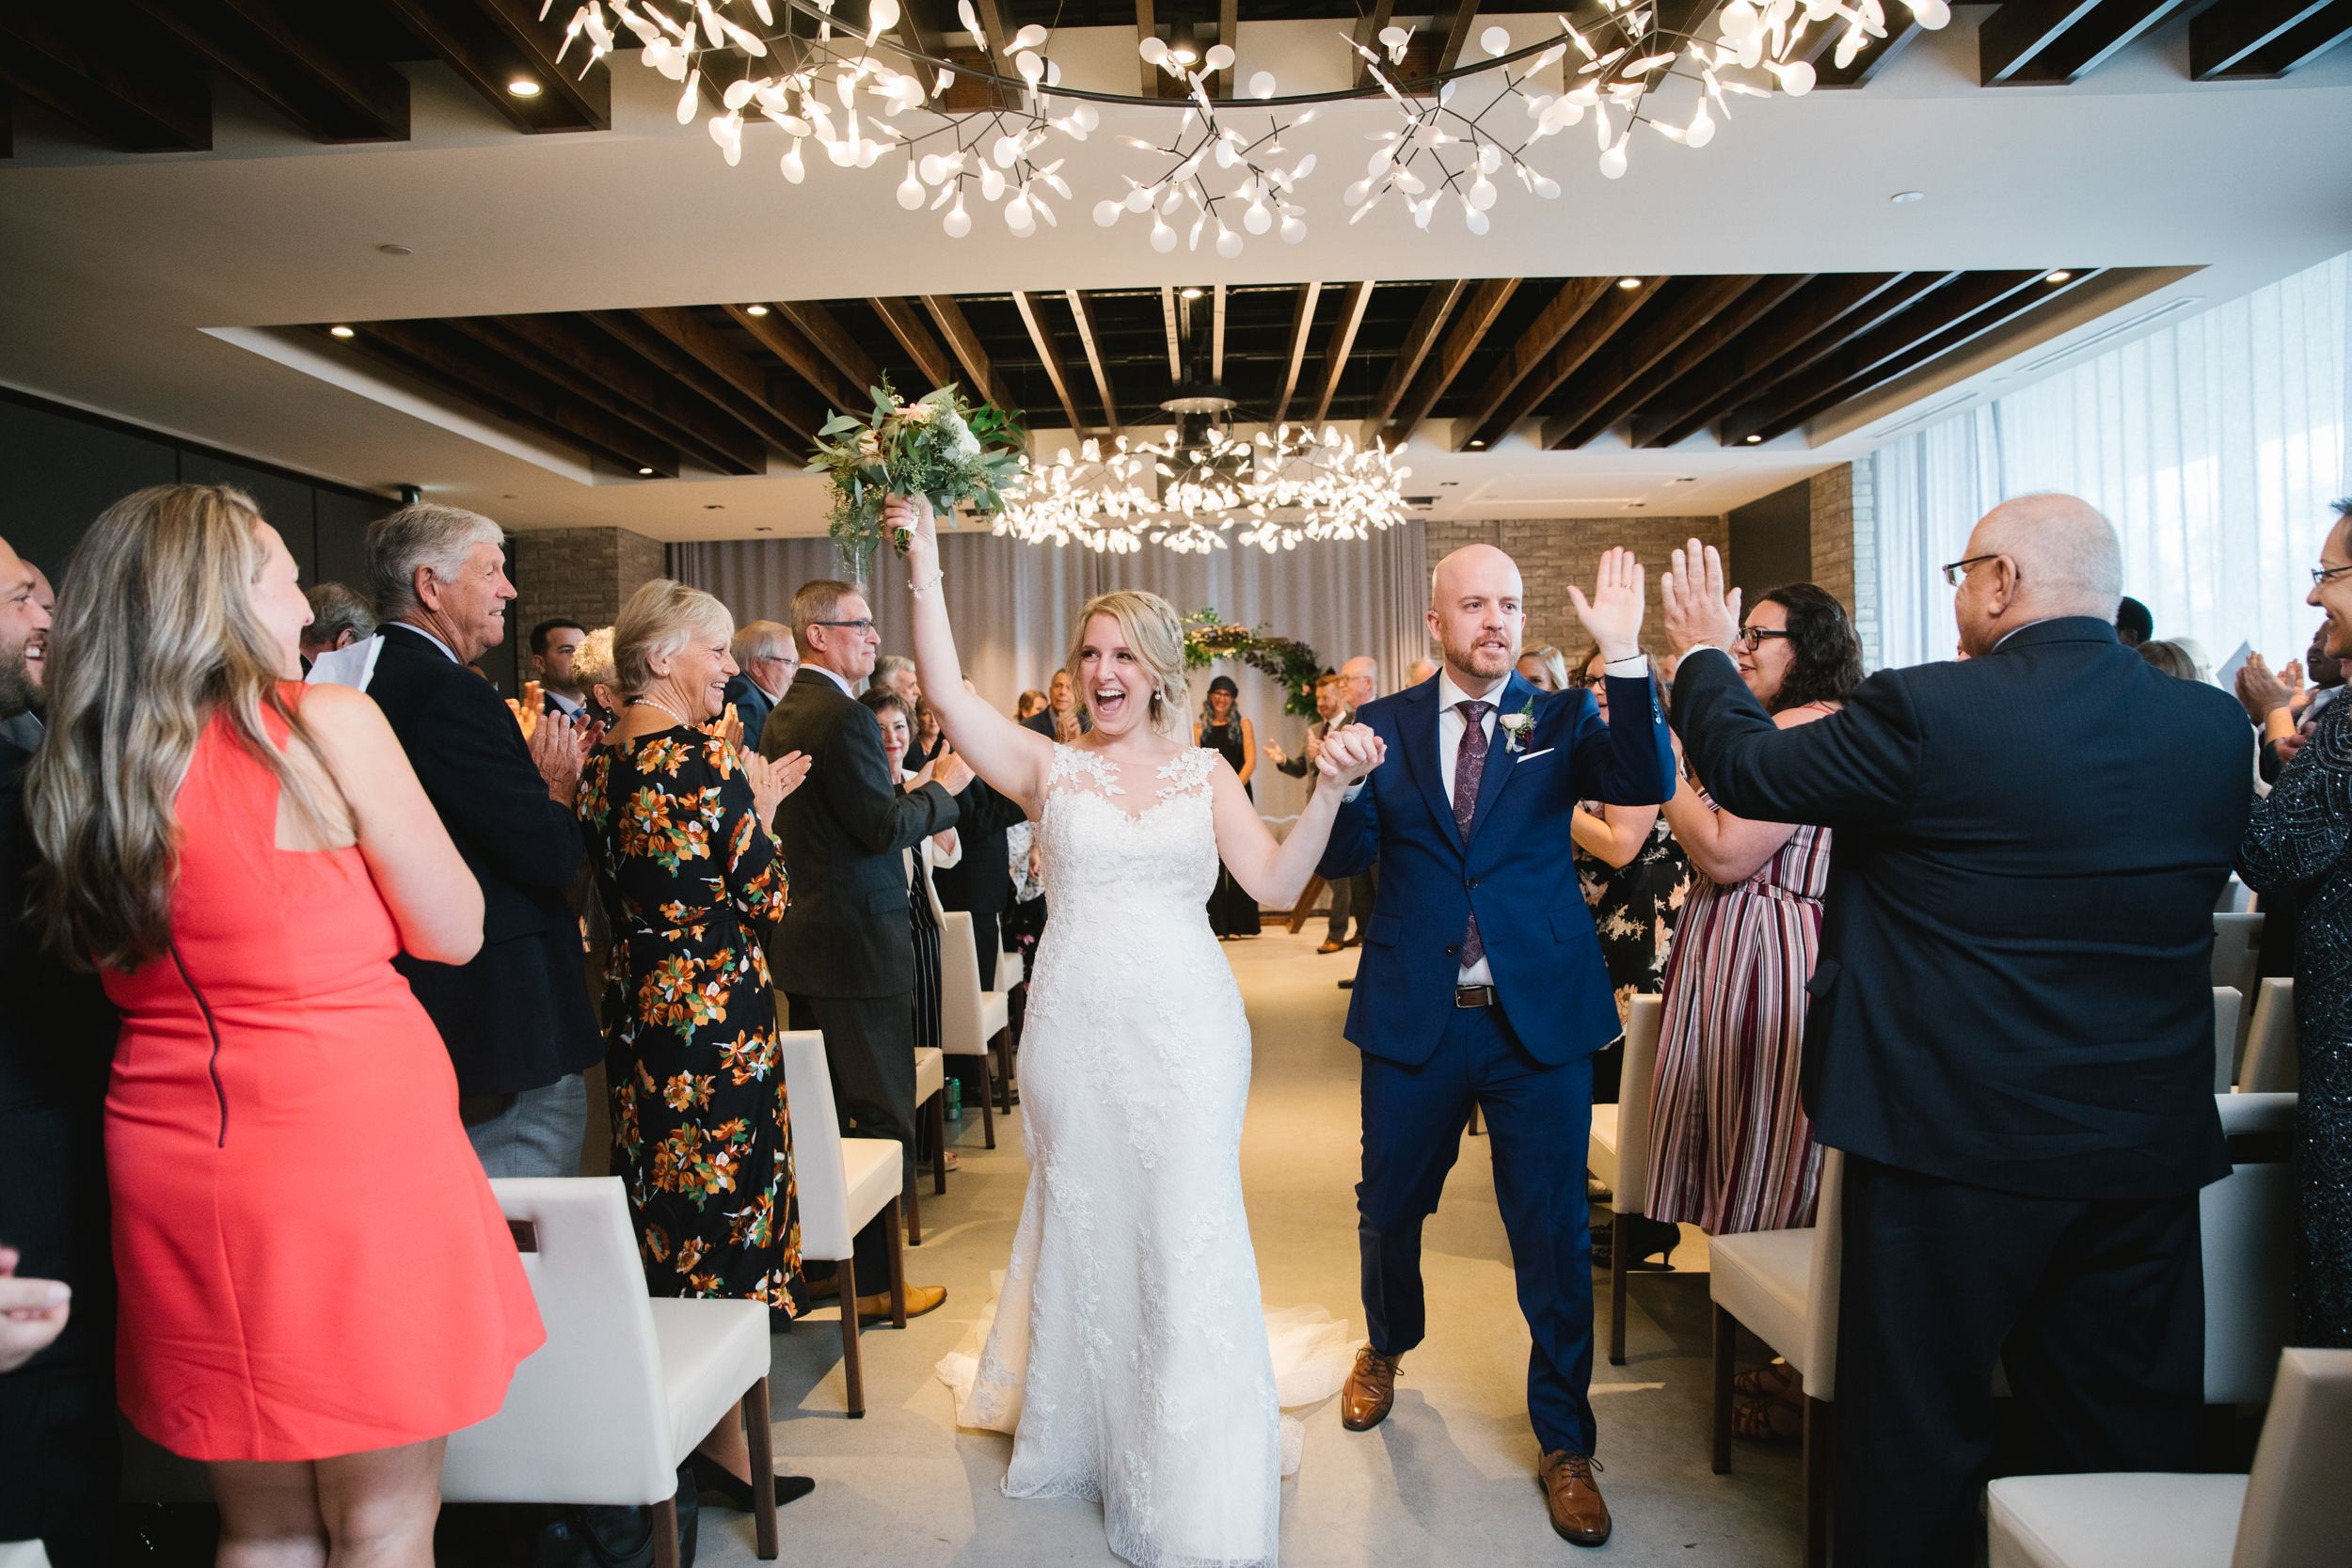 bride and groom celebrate walking down aisle with guests clapping indoors ceremony toronto